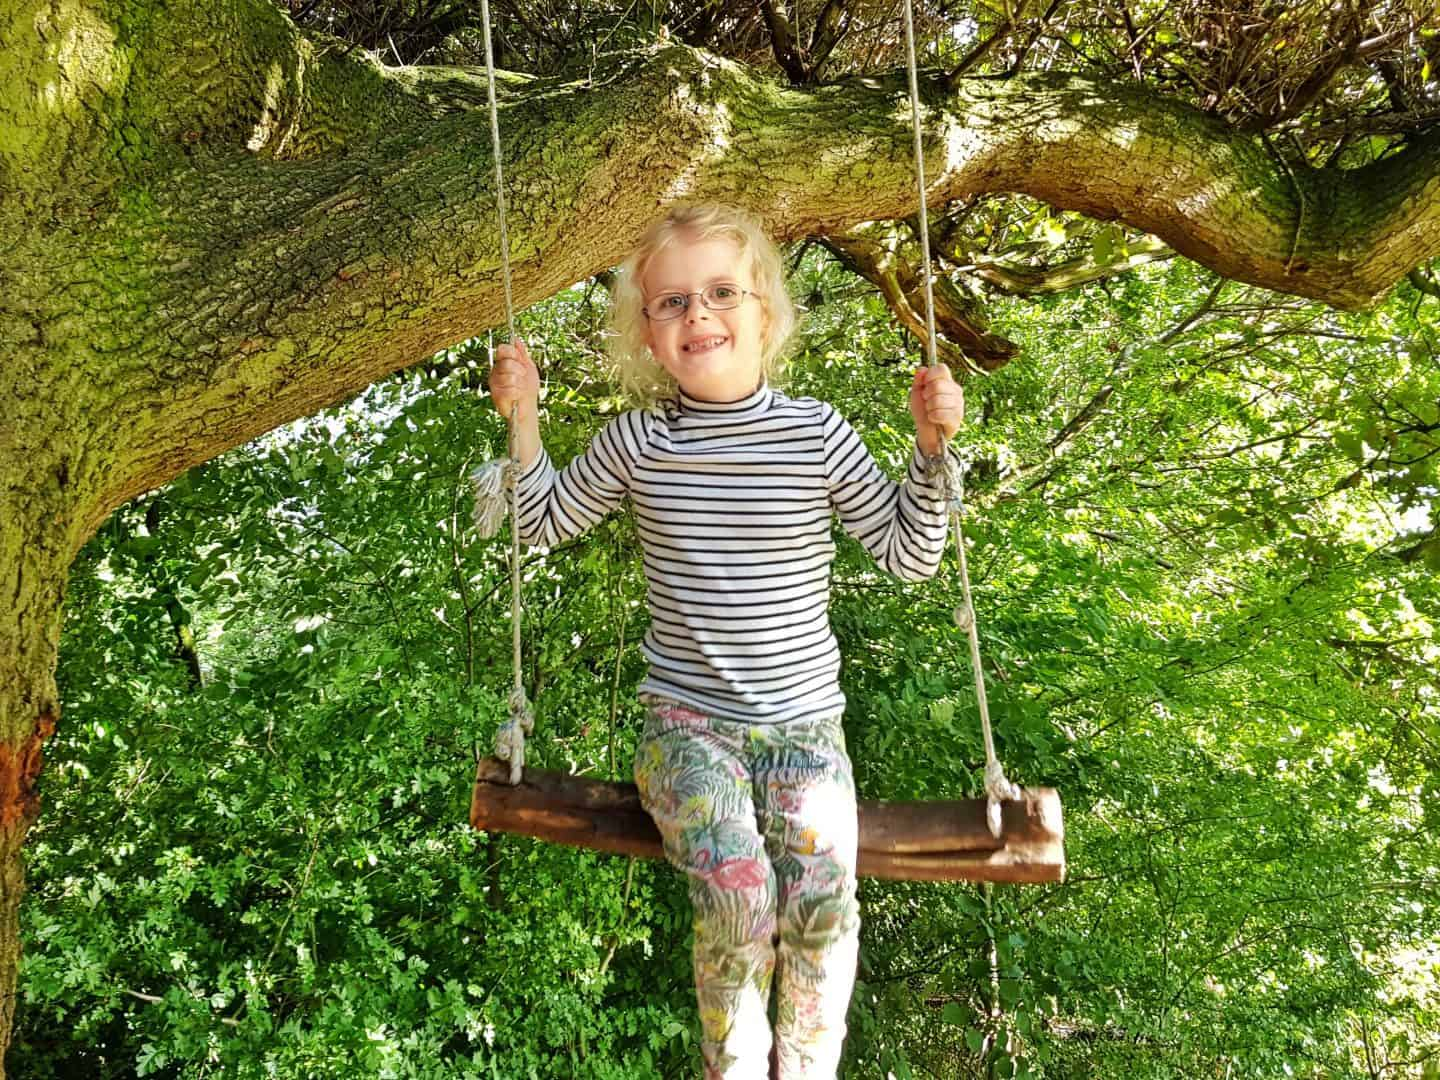 10 tips to prepare your child for tooth extraction girl on a swing before extraction